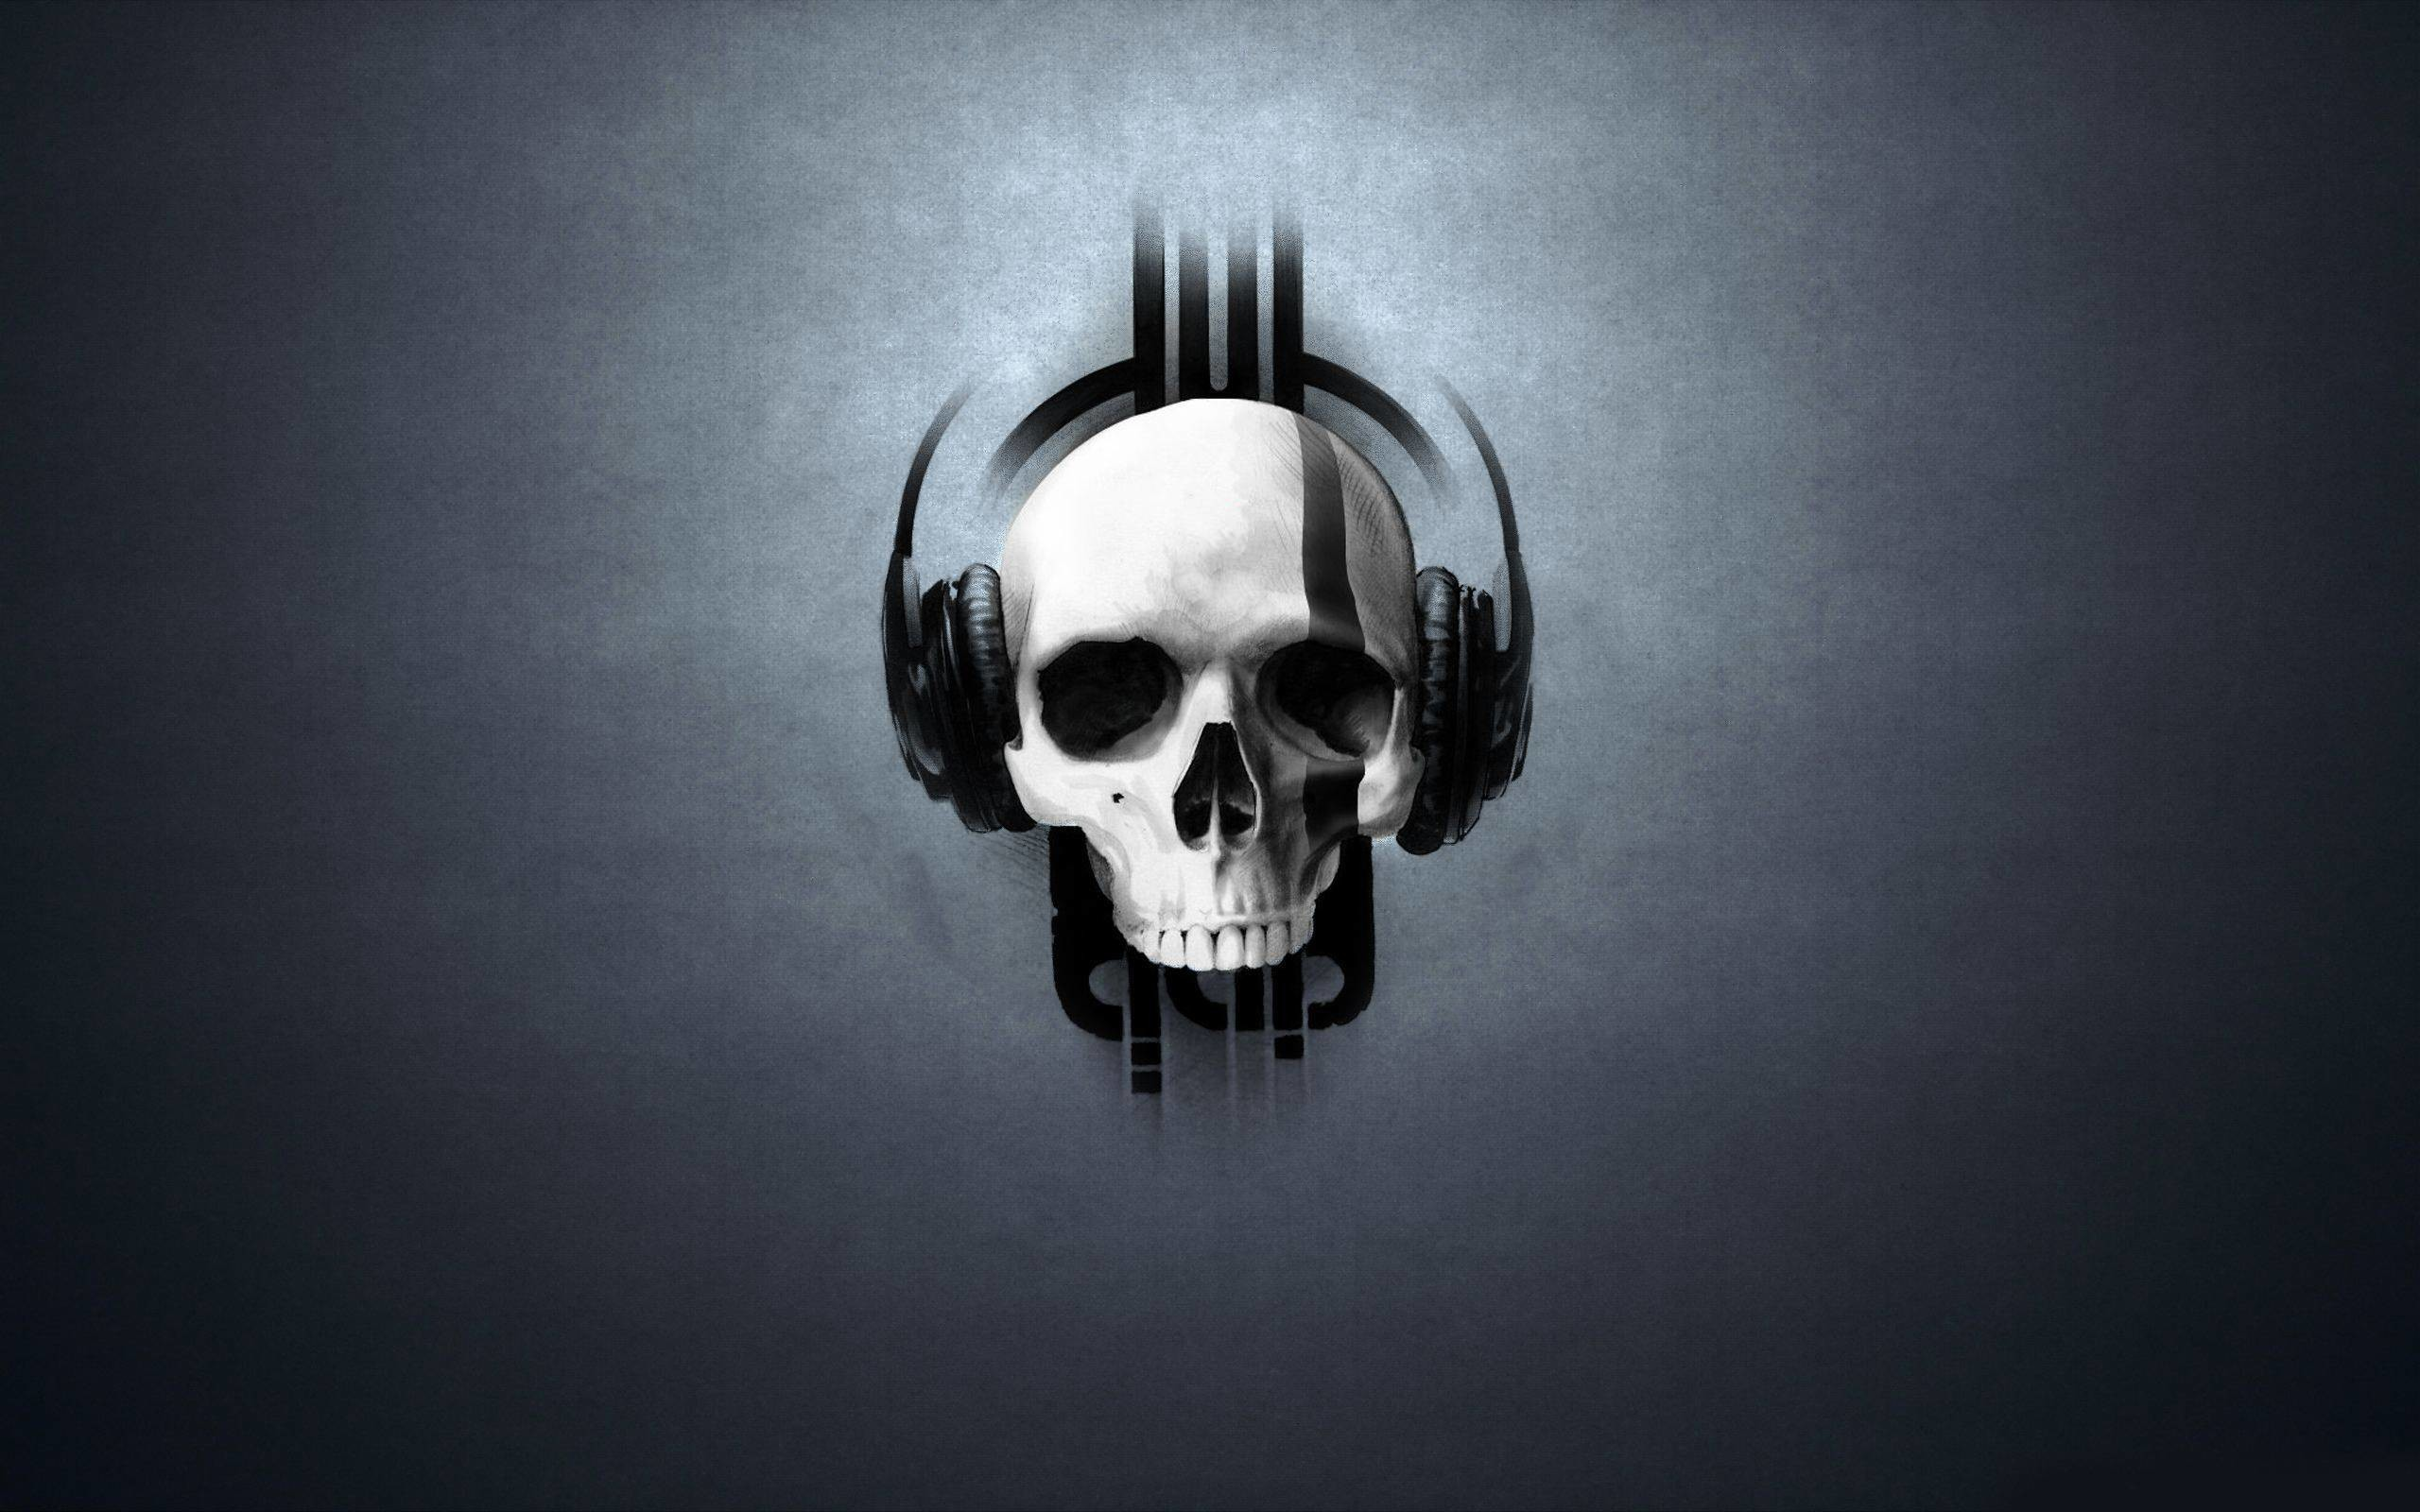 cool skull wallpaper hd (49+ images)